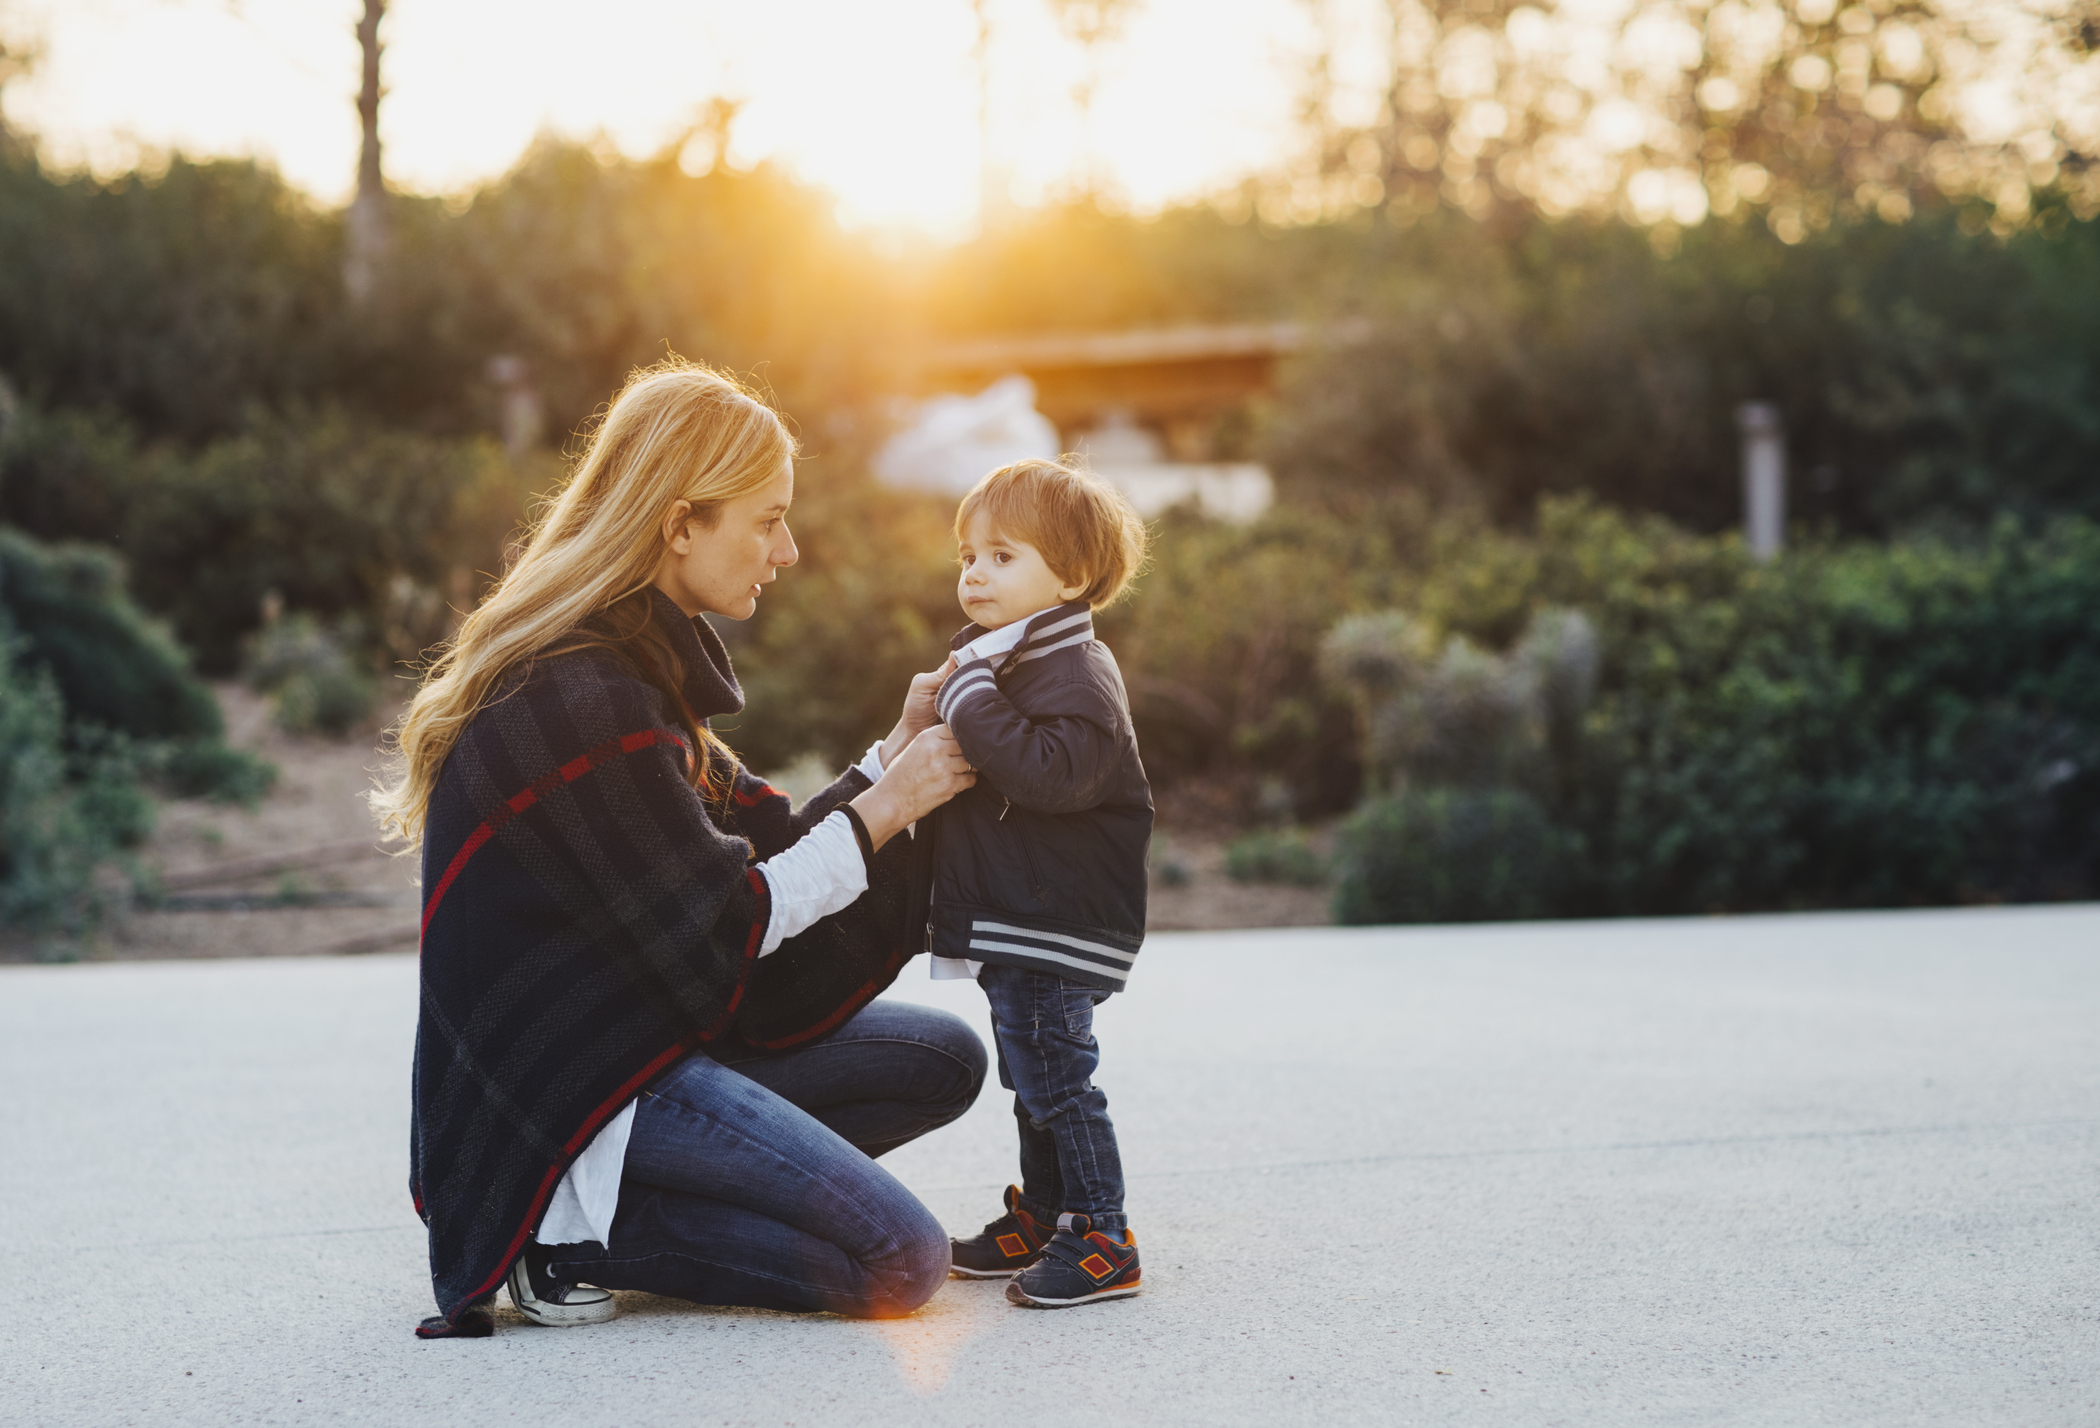 The Scorpio Mother's Parenting Style | LoveToKnow